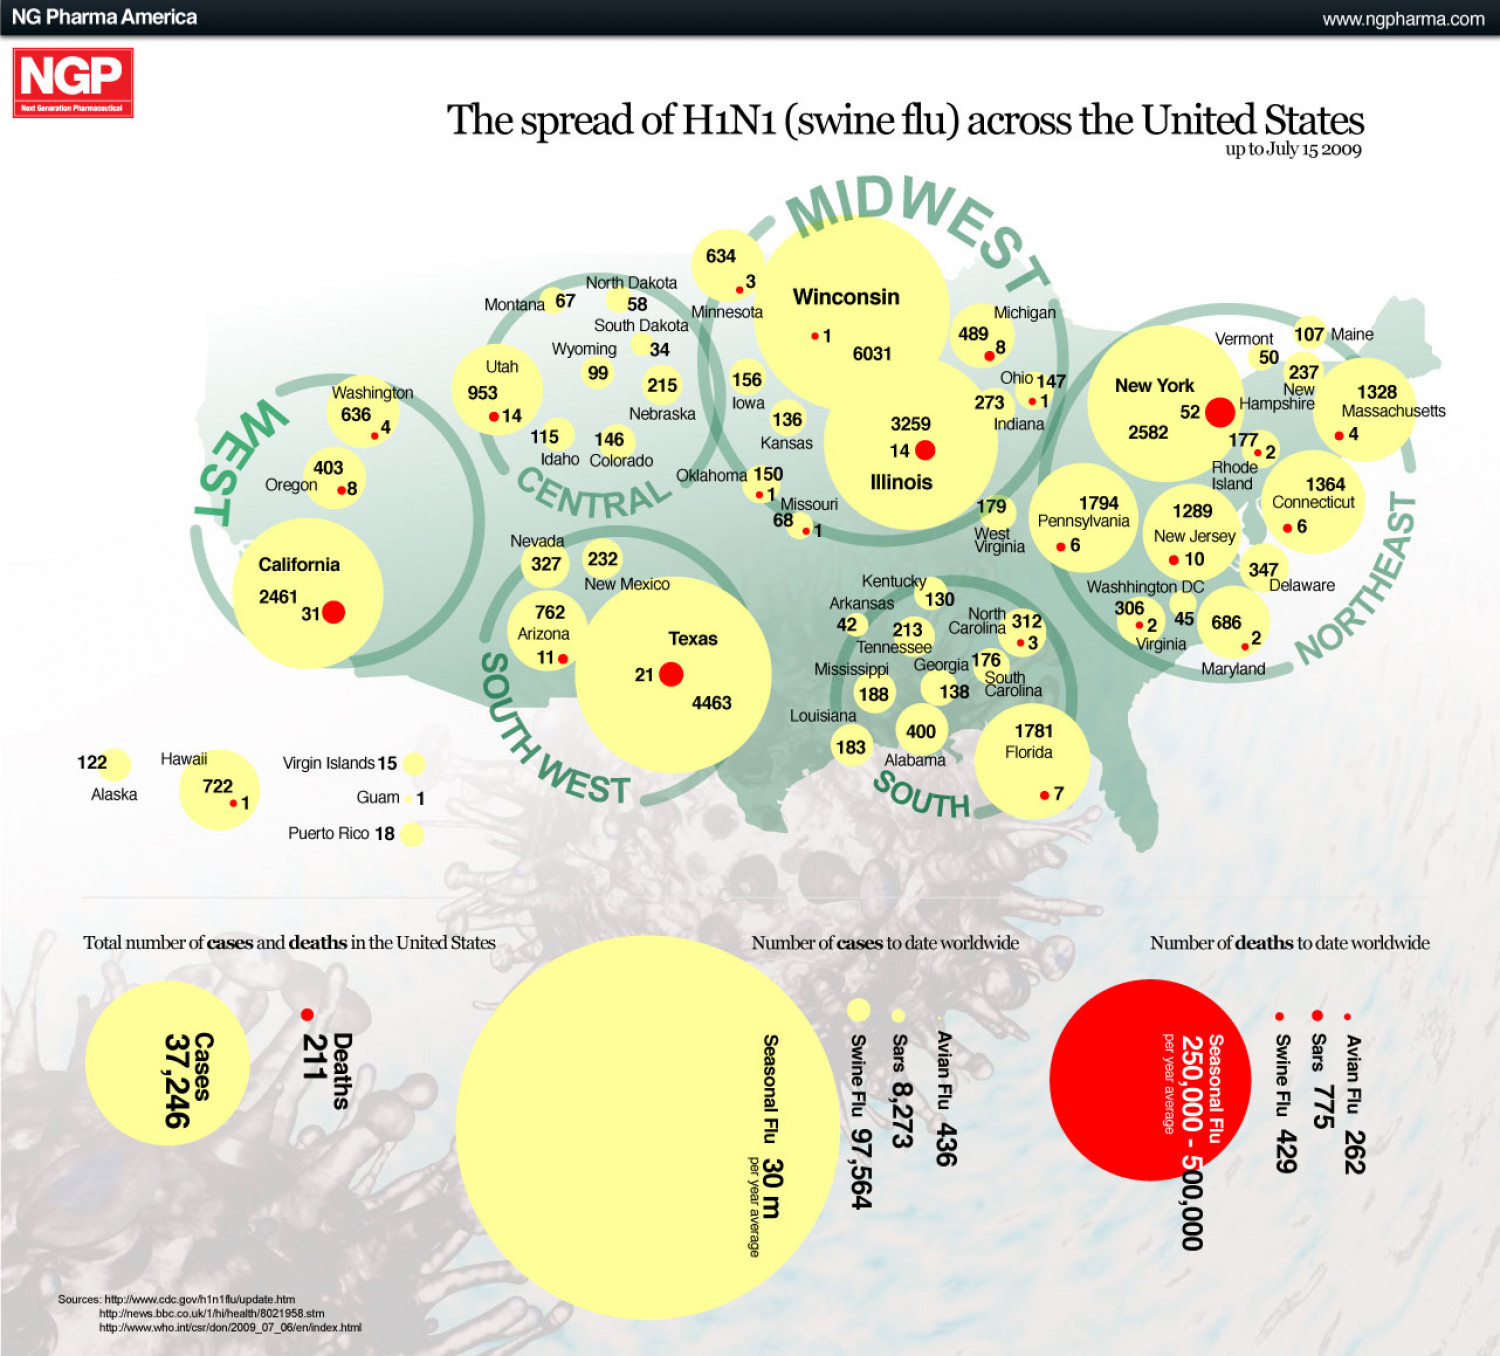 The Spread of the Swine Flu Across the U.S Infographic